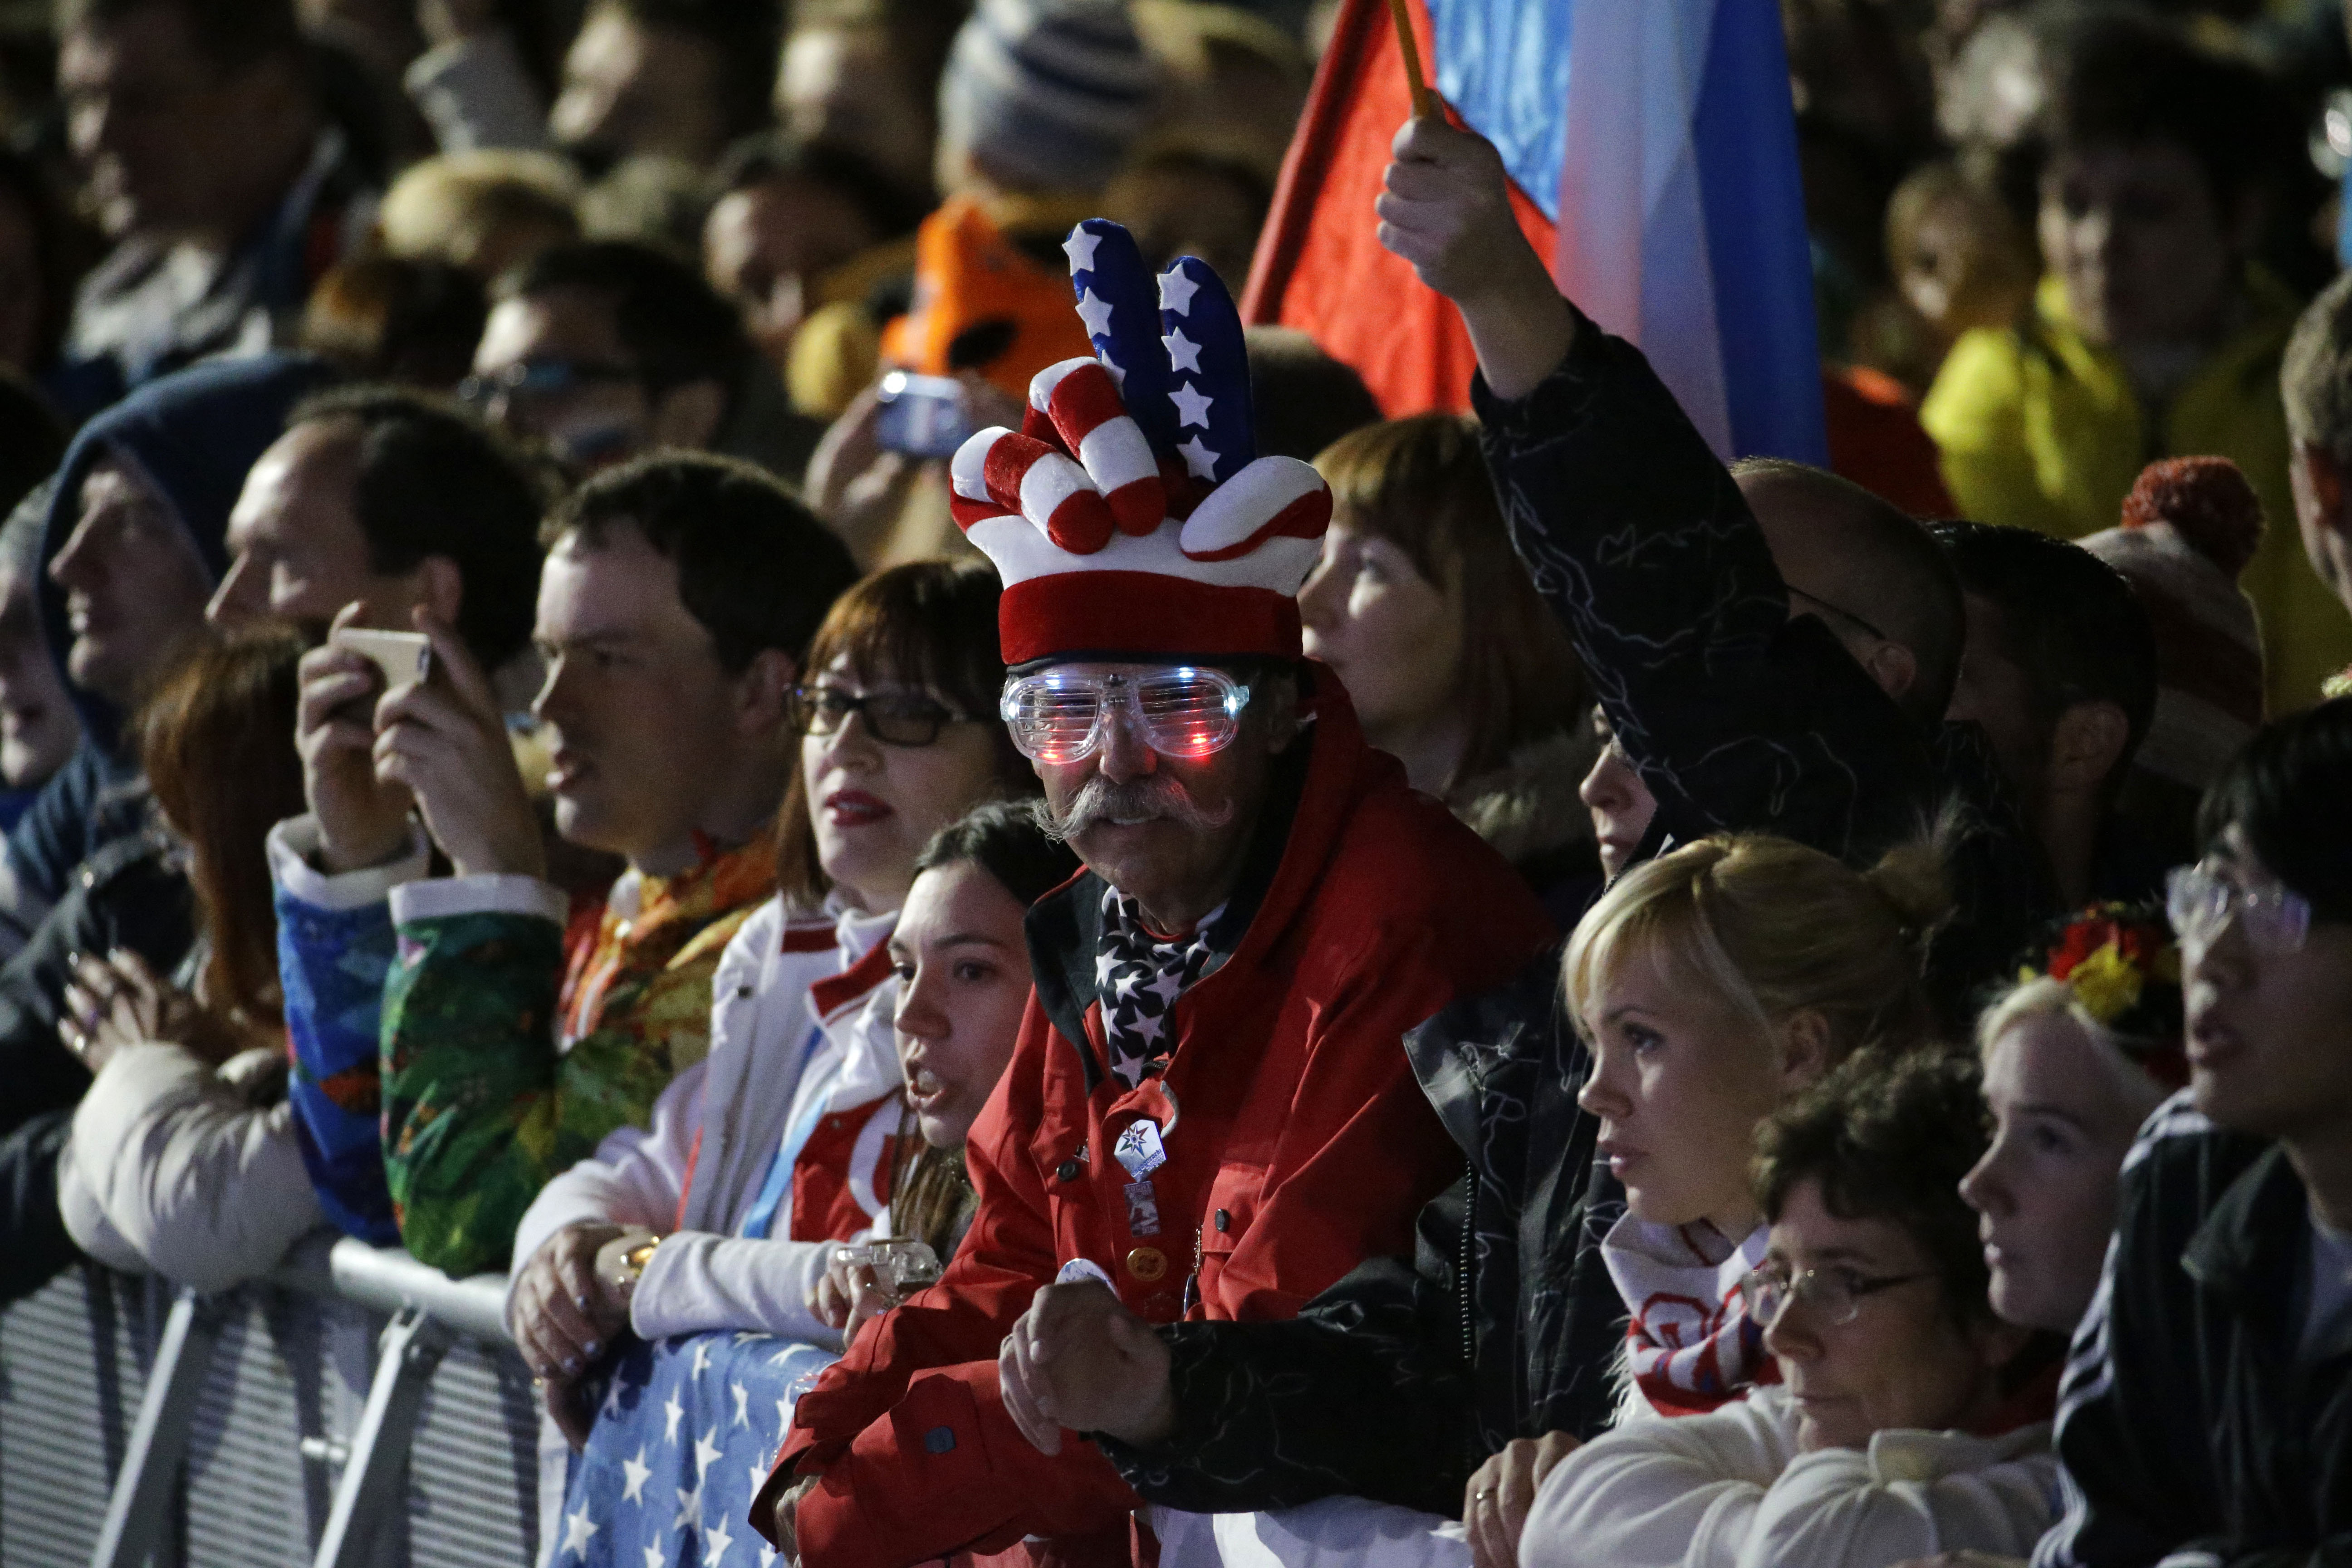 Fans gather before the medal ceremonies begin at the 2014 Winter Olympics, Thursday, Feb. 13, 2014, in Sochi, Russia. (AP Photo/Morry Gash)